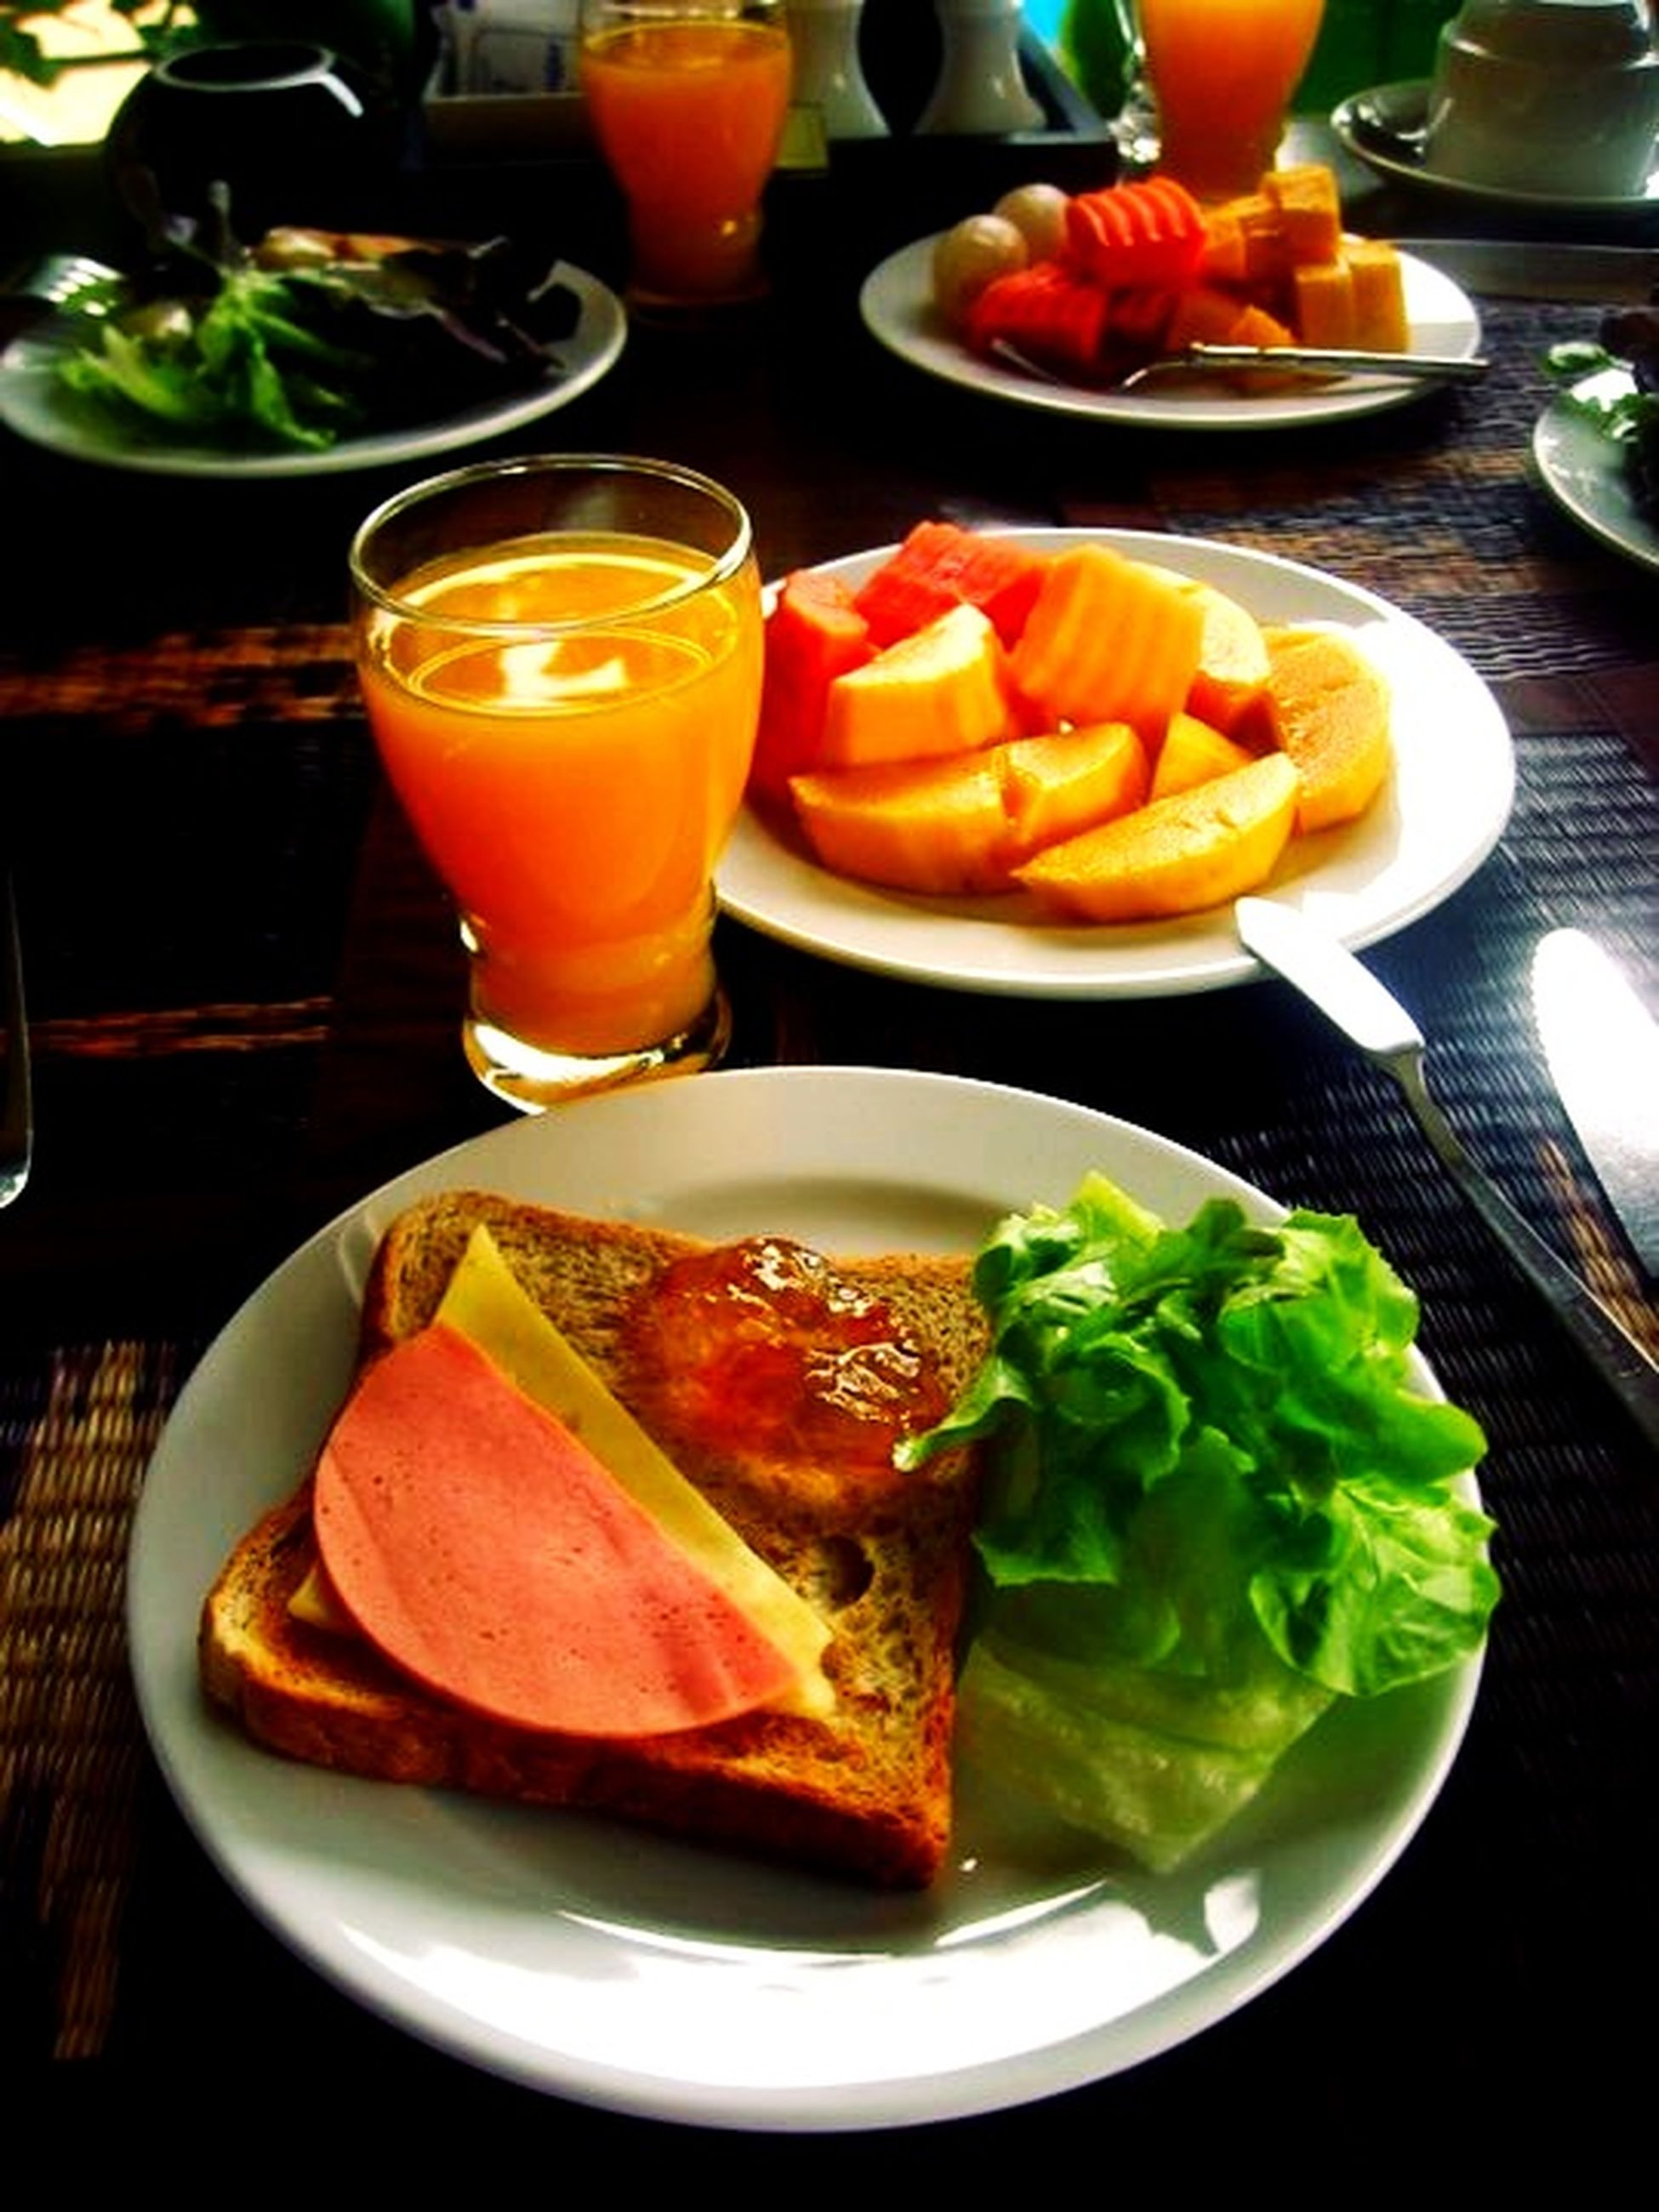 food and drink, food, freshness, indoors, healthy eating, table, still life, ready-to-eat, plate, vegetable, salad, tomato, meal, serving size, close-up, slice, high angle view, meat, drink, drinking glass